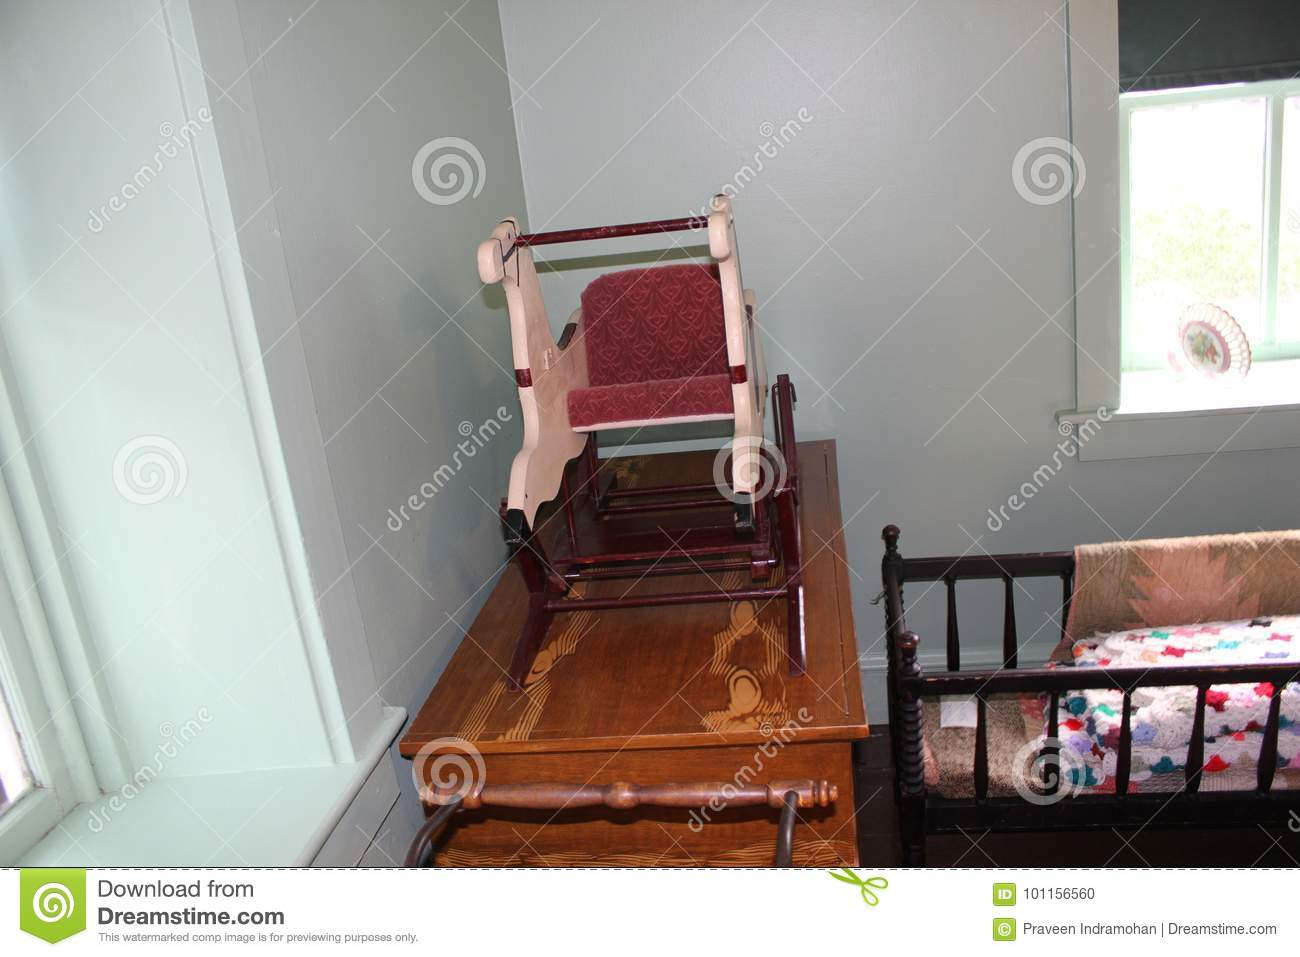 High Quality Wooden Baby Furniture And Cradle Inside Amish House